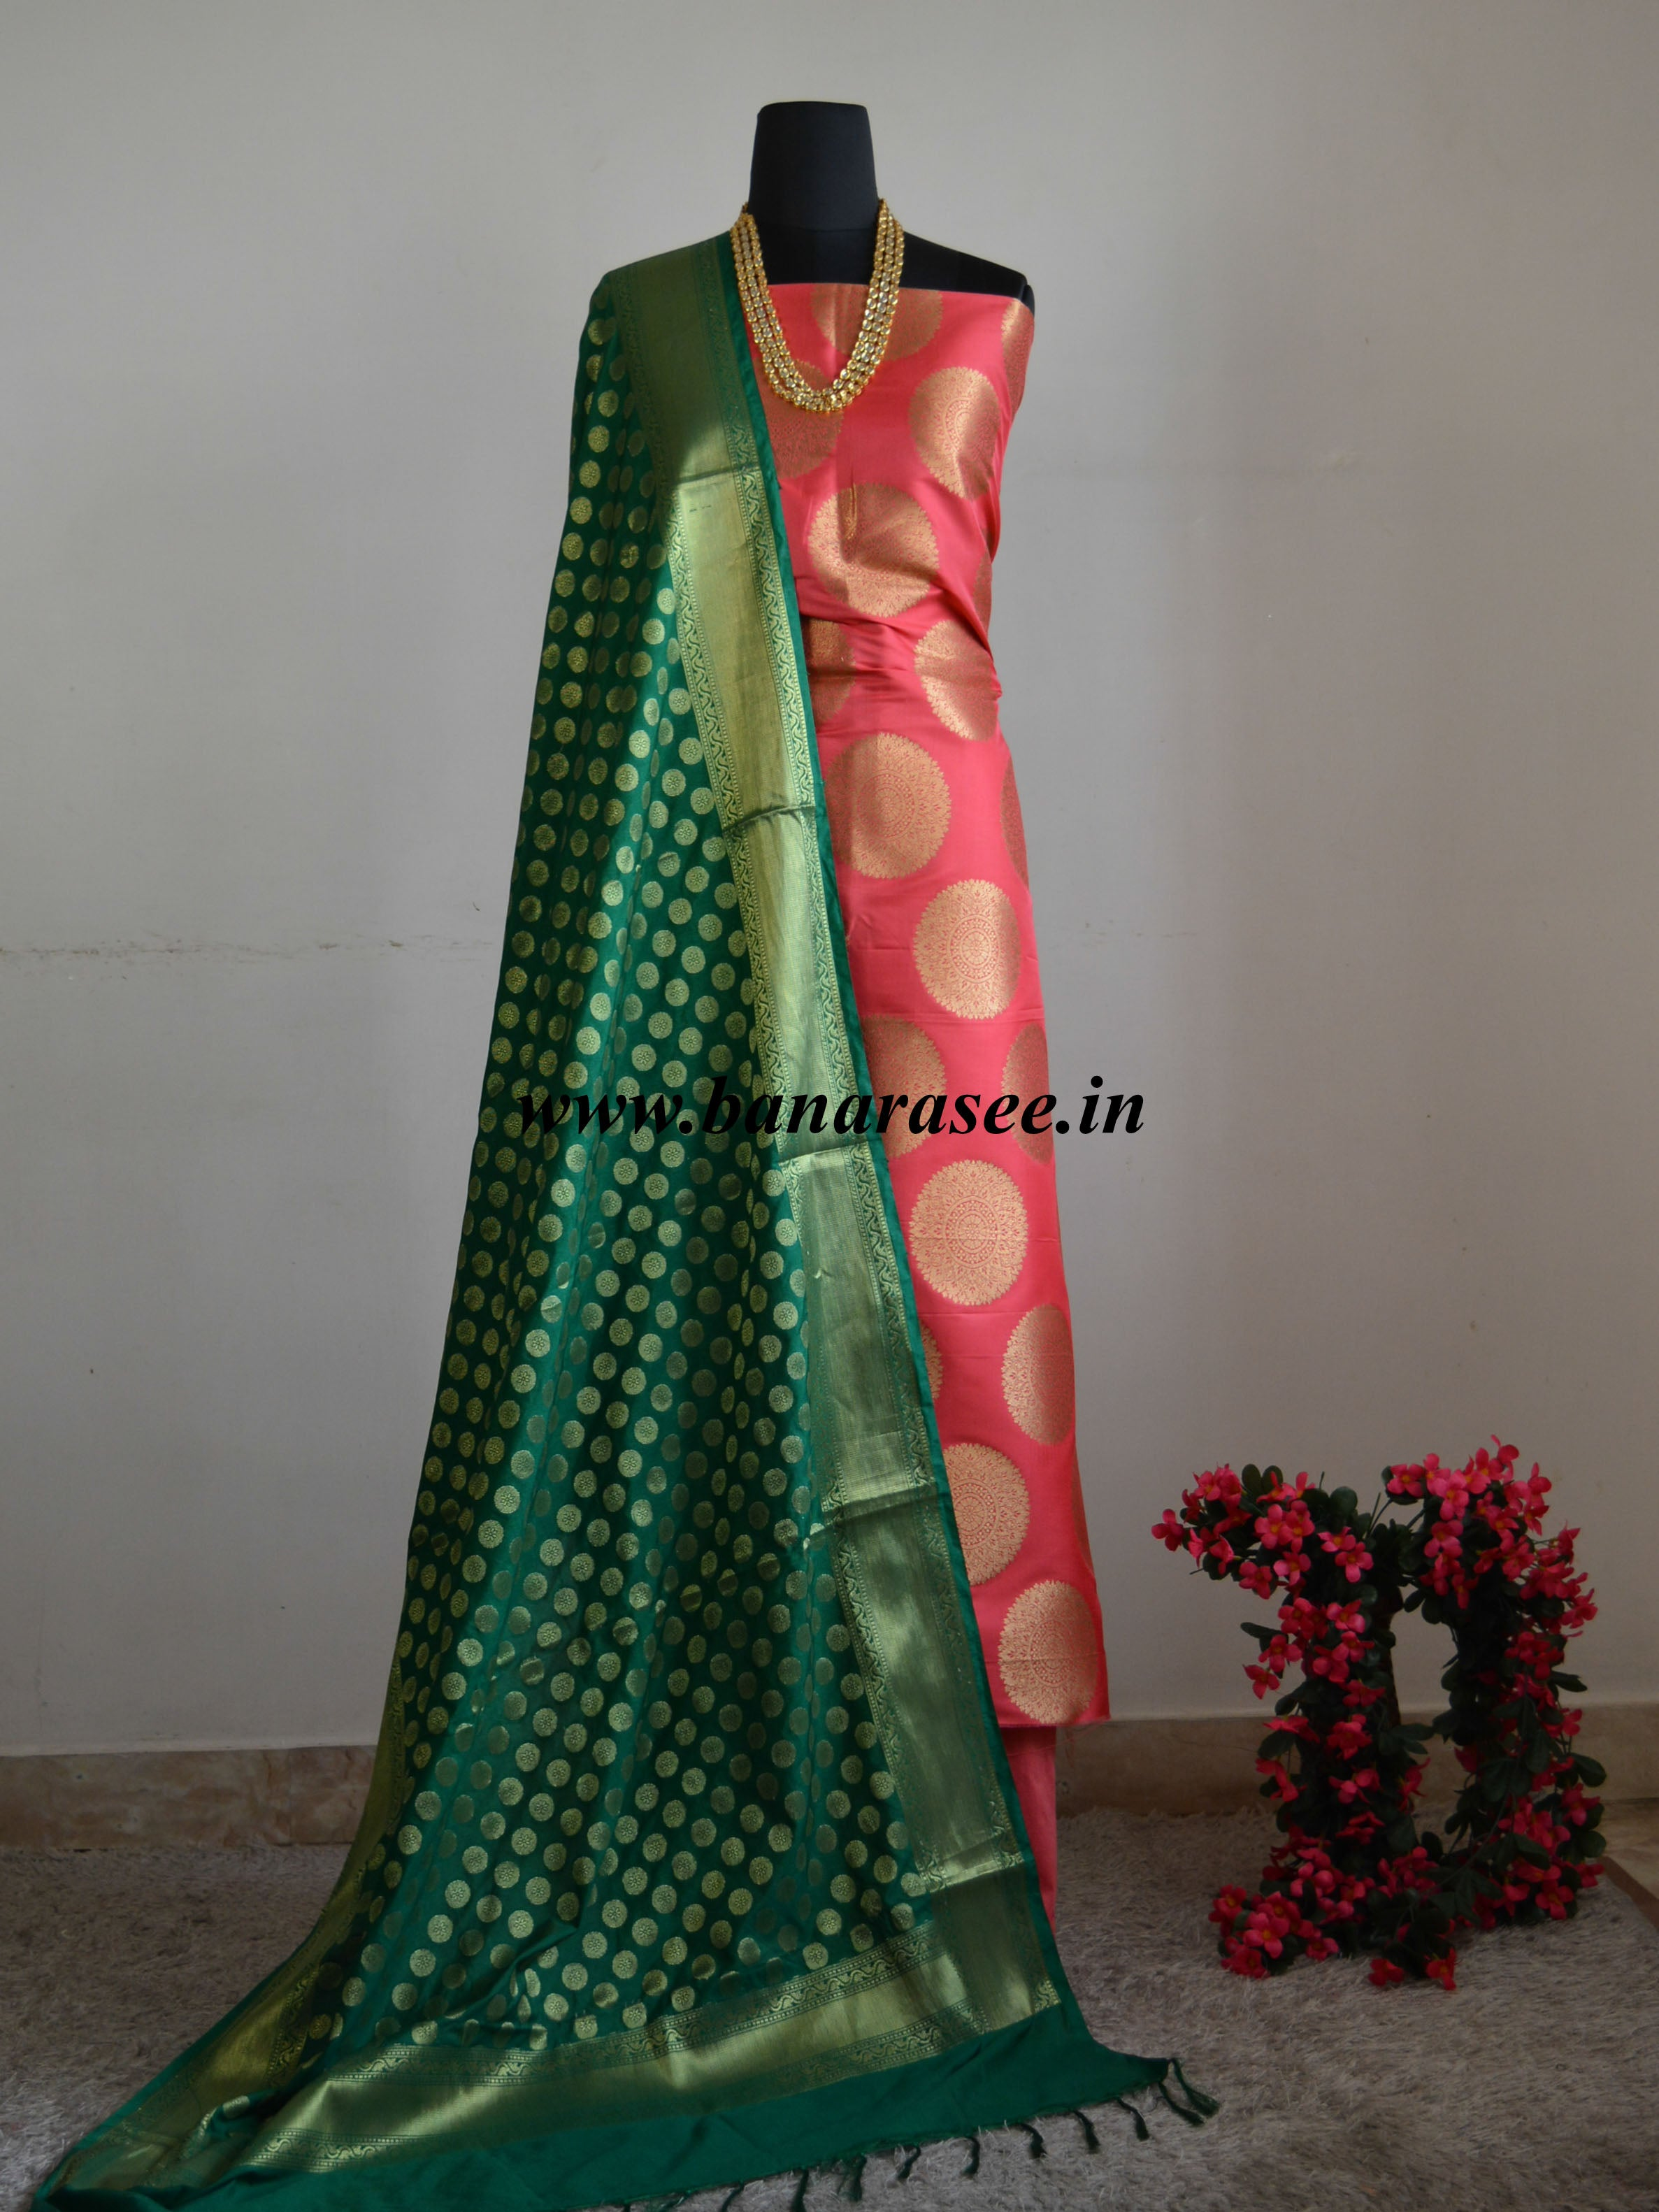 Banarasee Handwoven Satin Brocade Salwar Kameez Fabric & Green Art Silk Dupatta-Peach